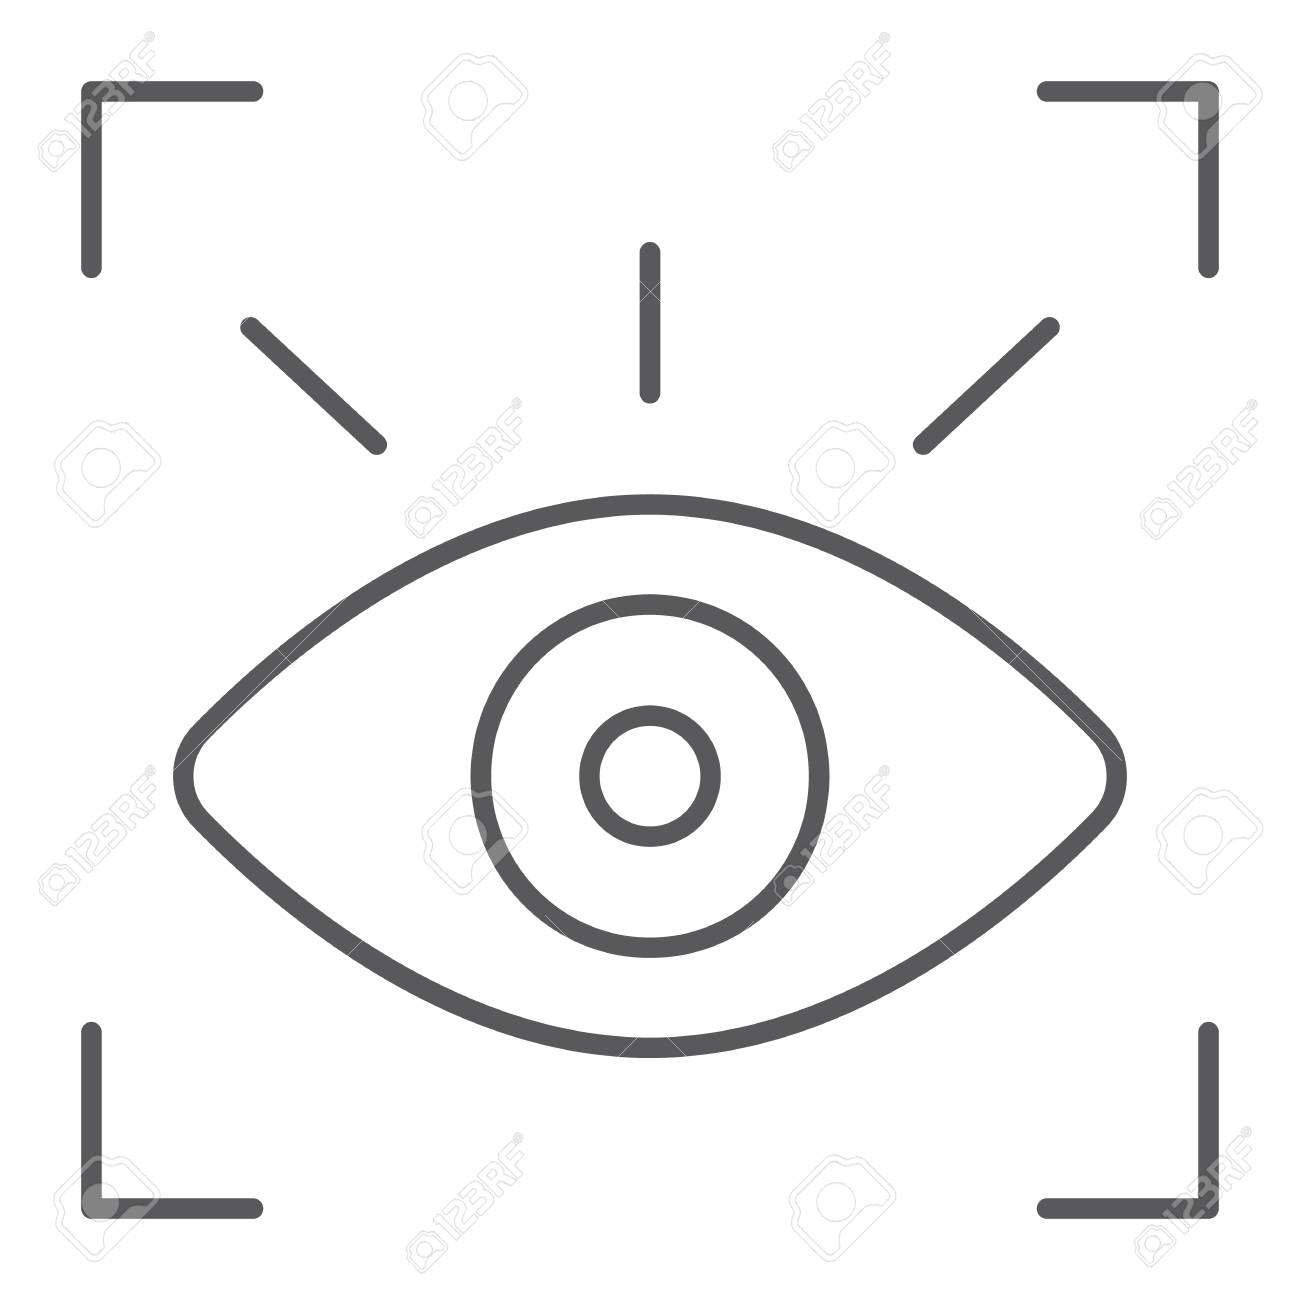 Retina scanner thin line icon, recognition and authentication,